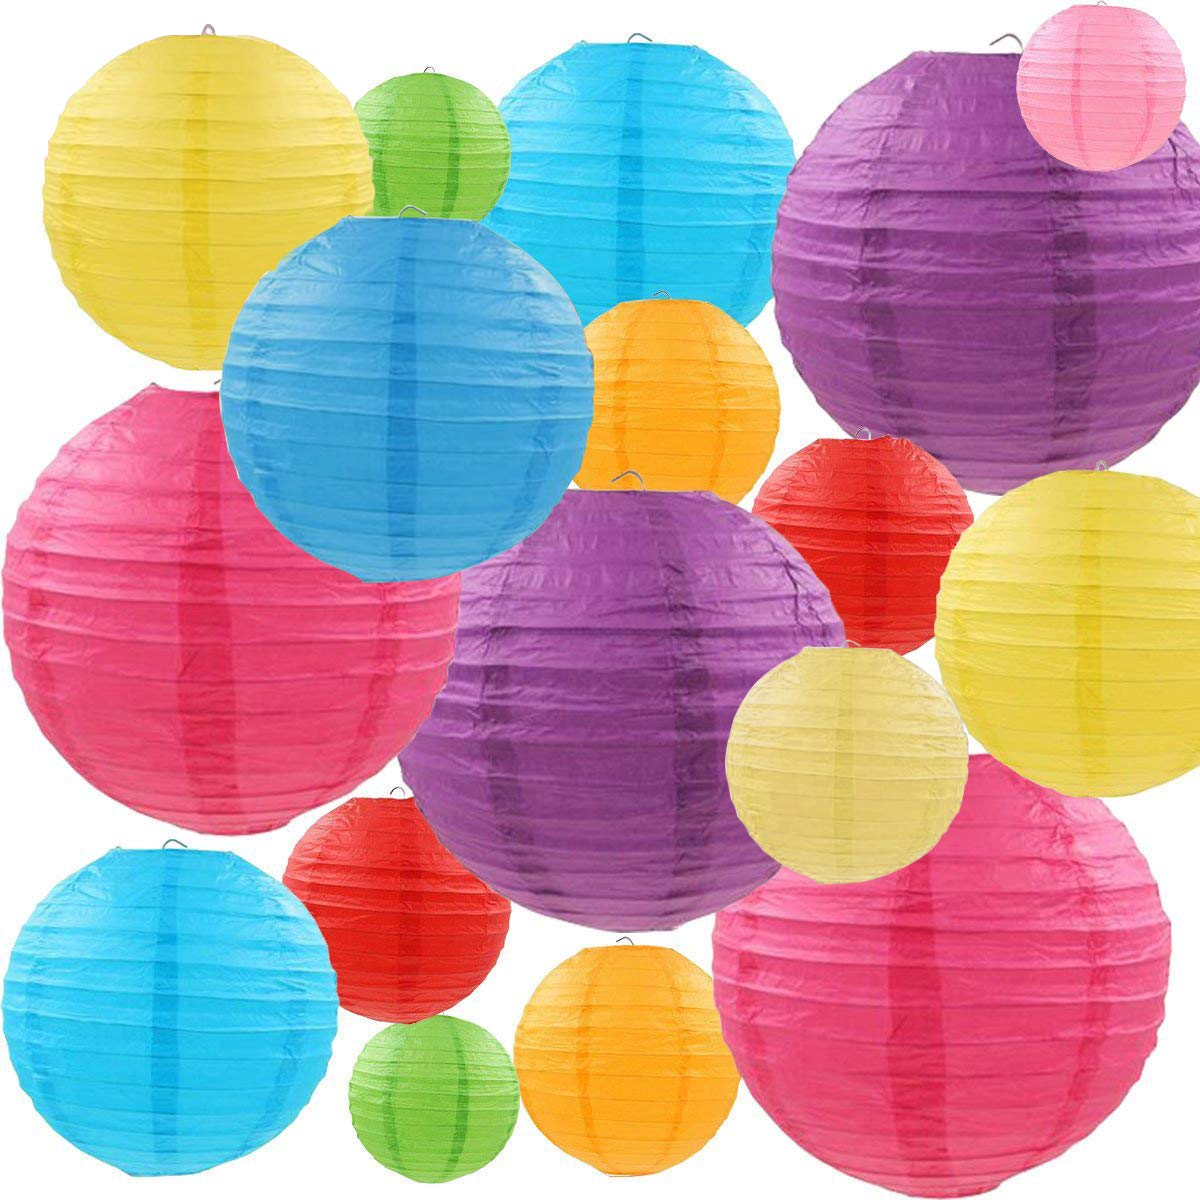 MYSWEETY 25 Packs Paper Lanterns Decorative with Assorted Colors and Multi Sizes for Party Decoration